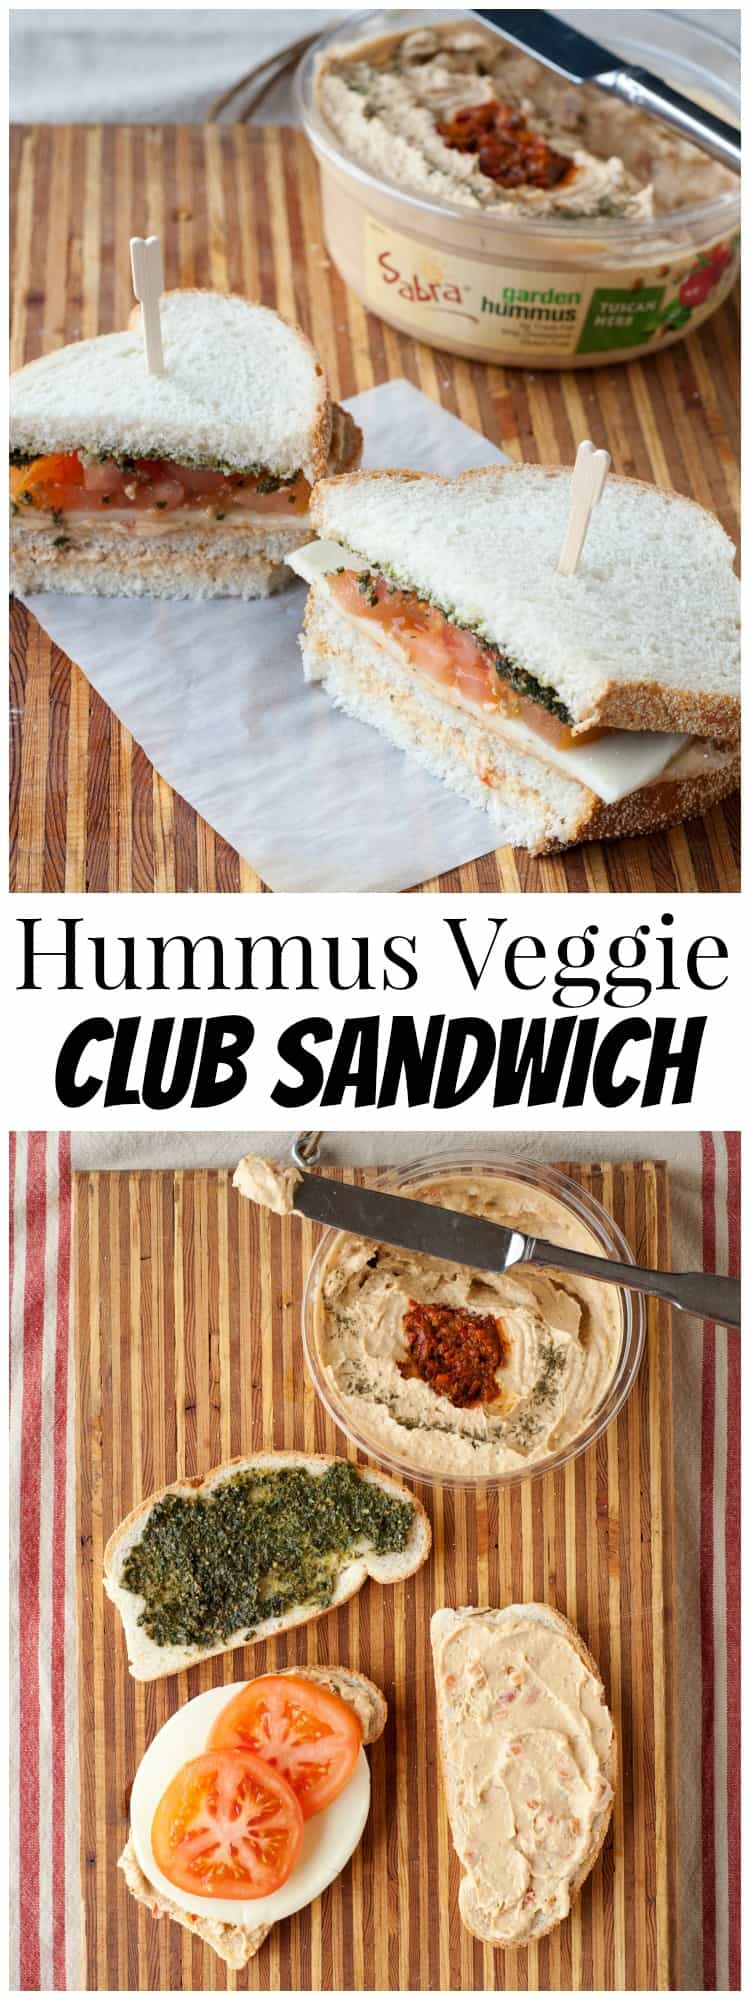 Tired of the same old sandwich? This hummus veggie club sandwich will become a delicious staple in your lunch rotation!